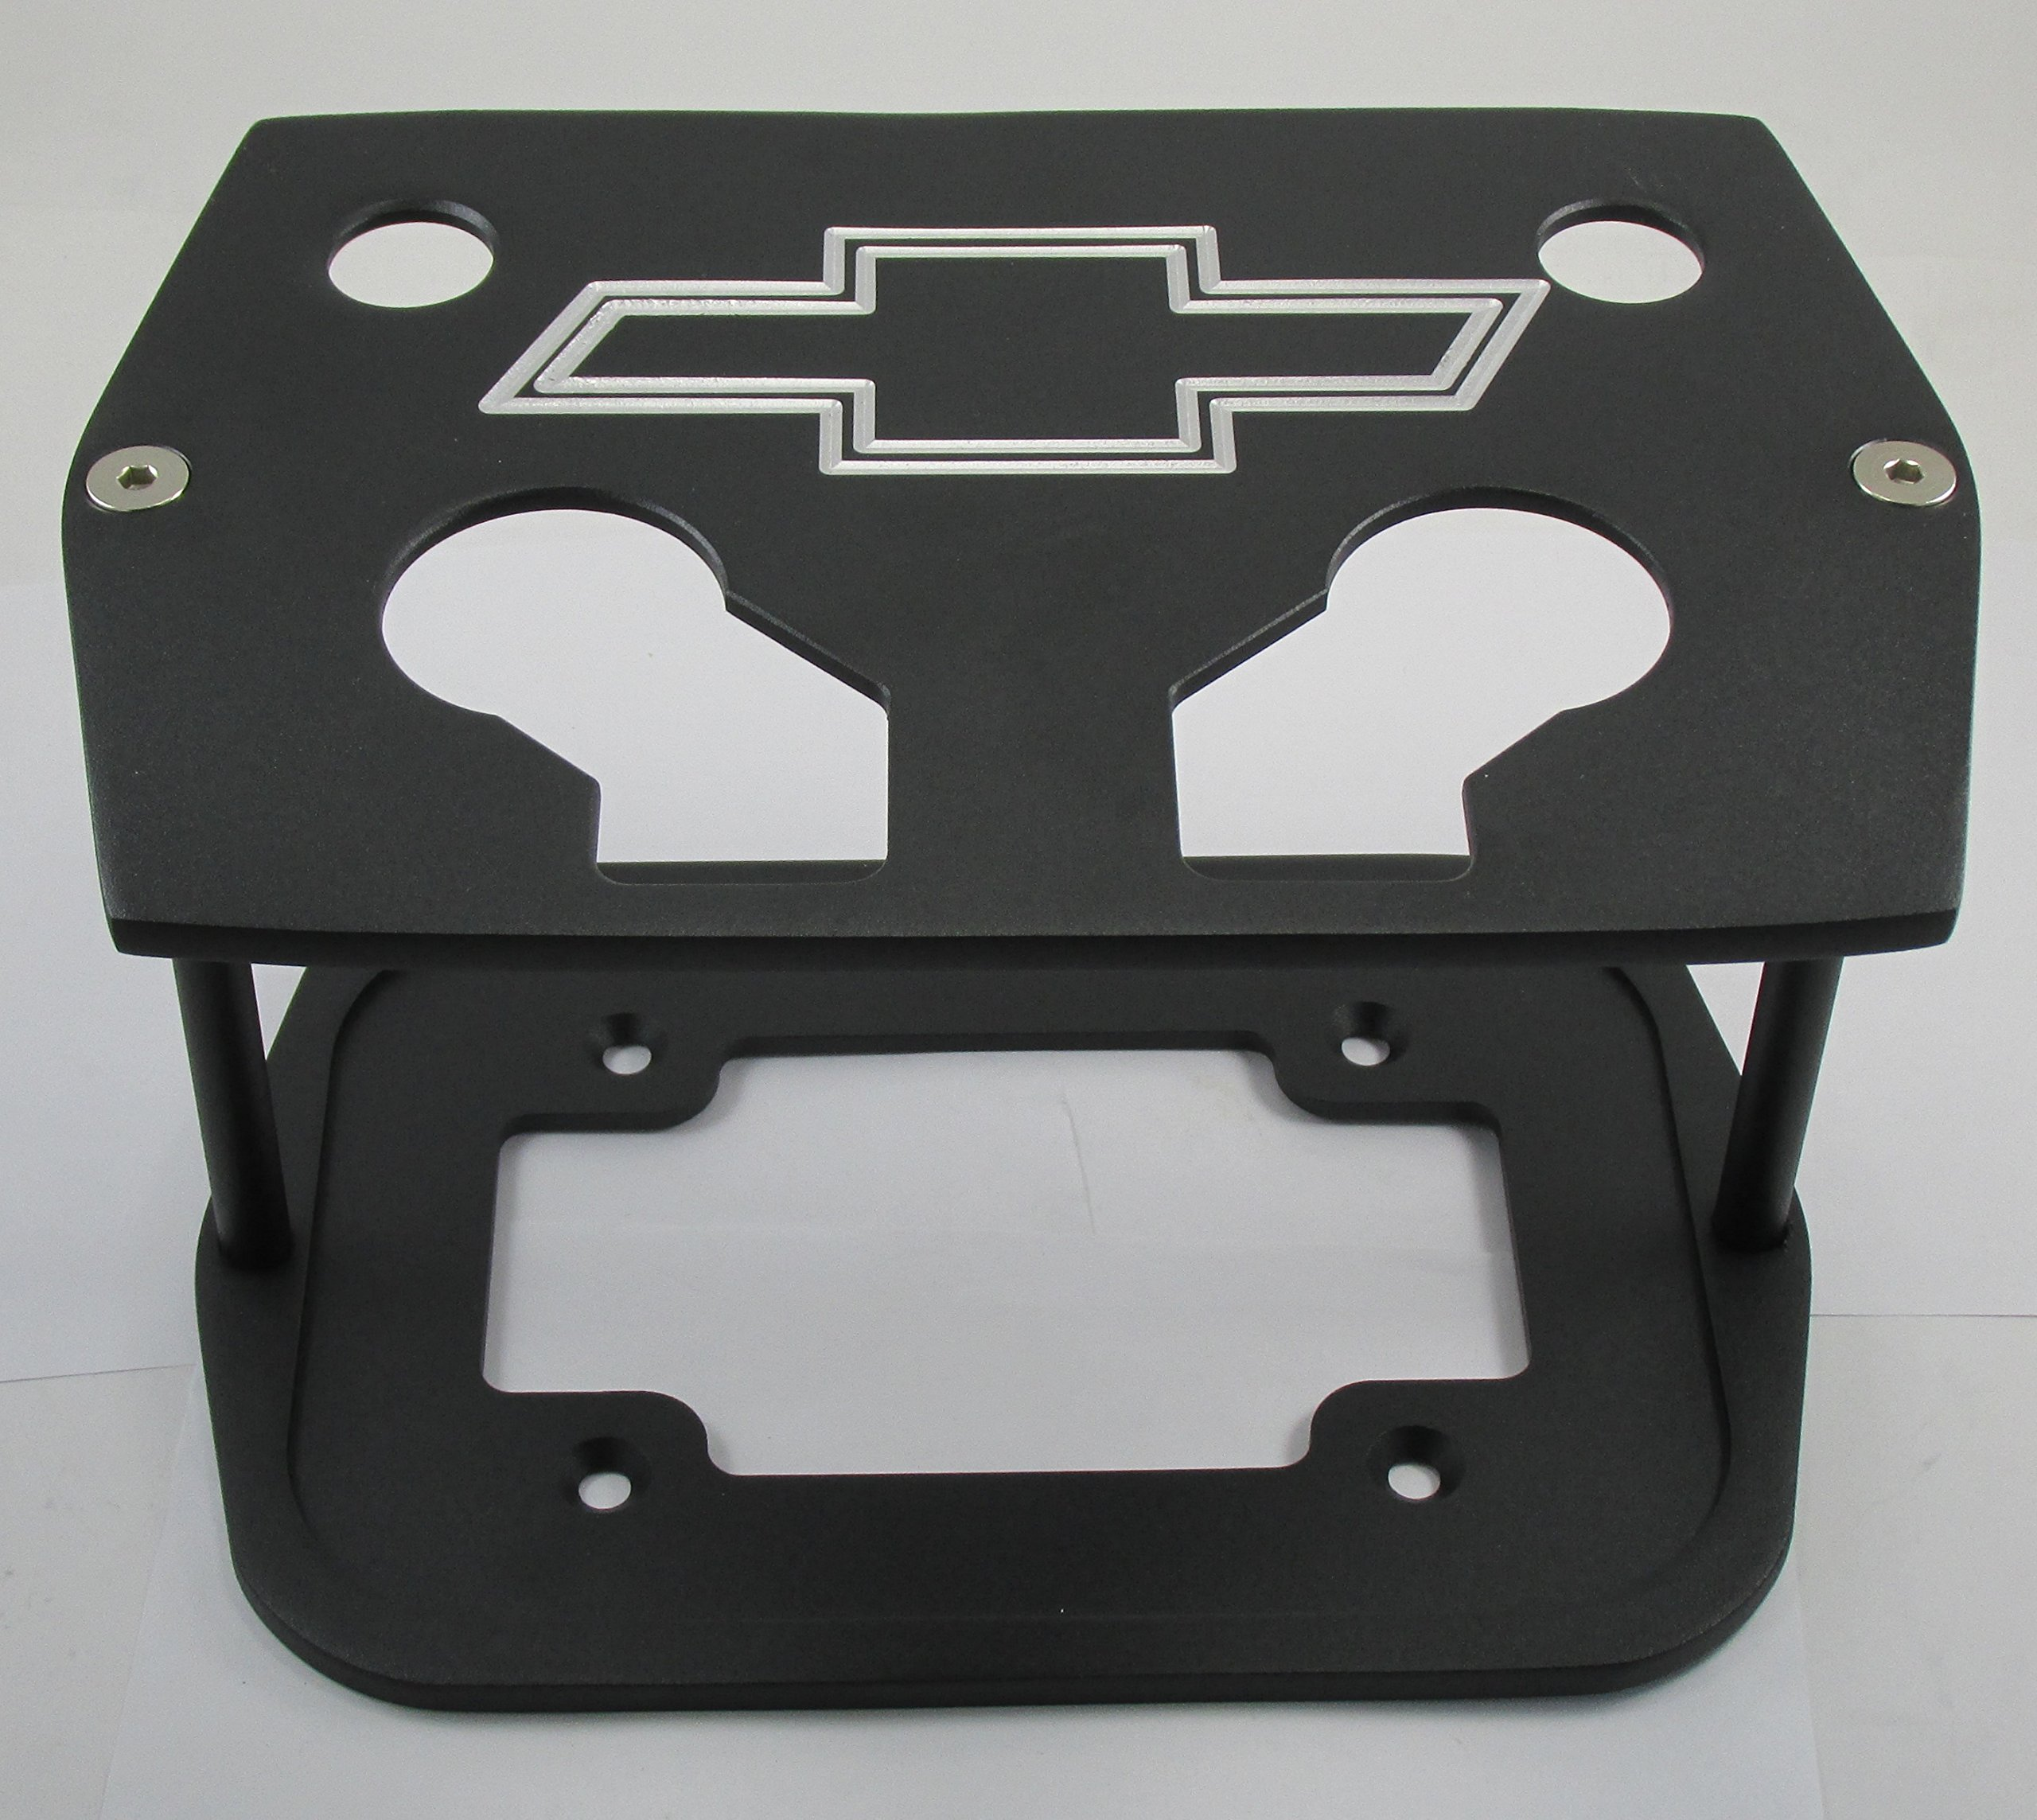 Billet Aluminum Group 34/78 Optima Battery Tray - Chevy Bowtie Logo Textured Black - Red Yellow Blue Top